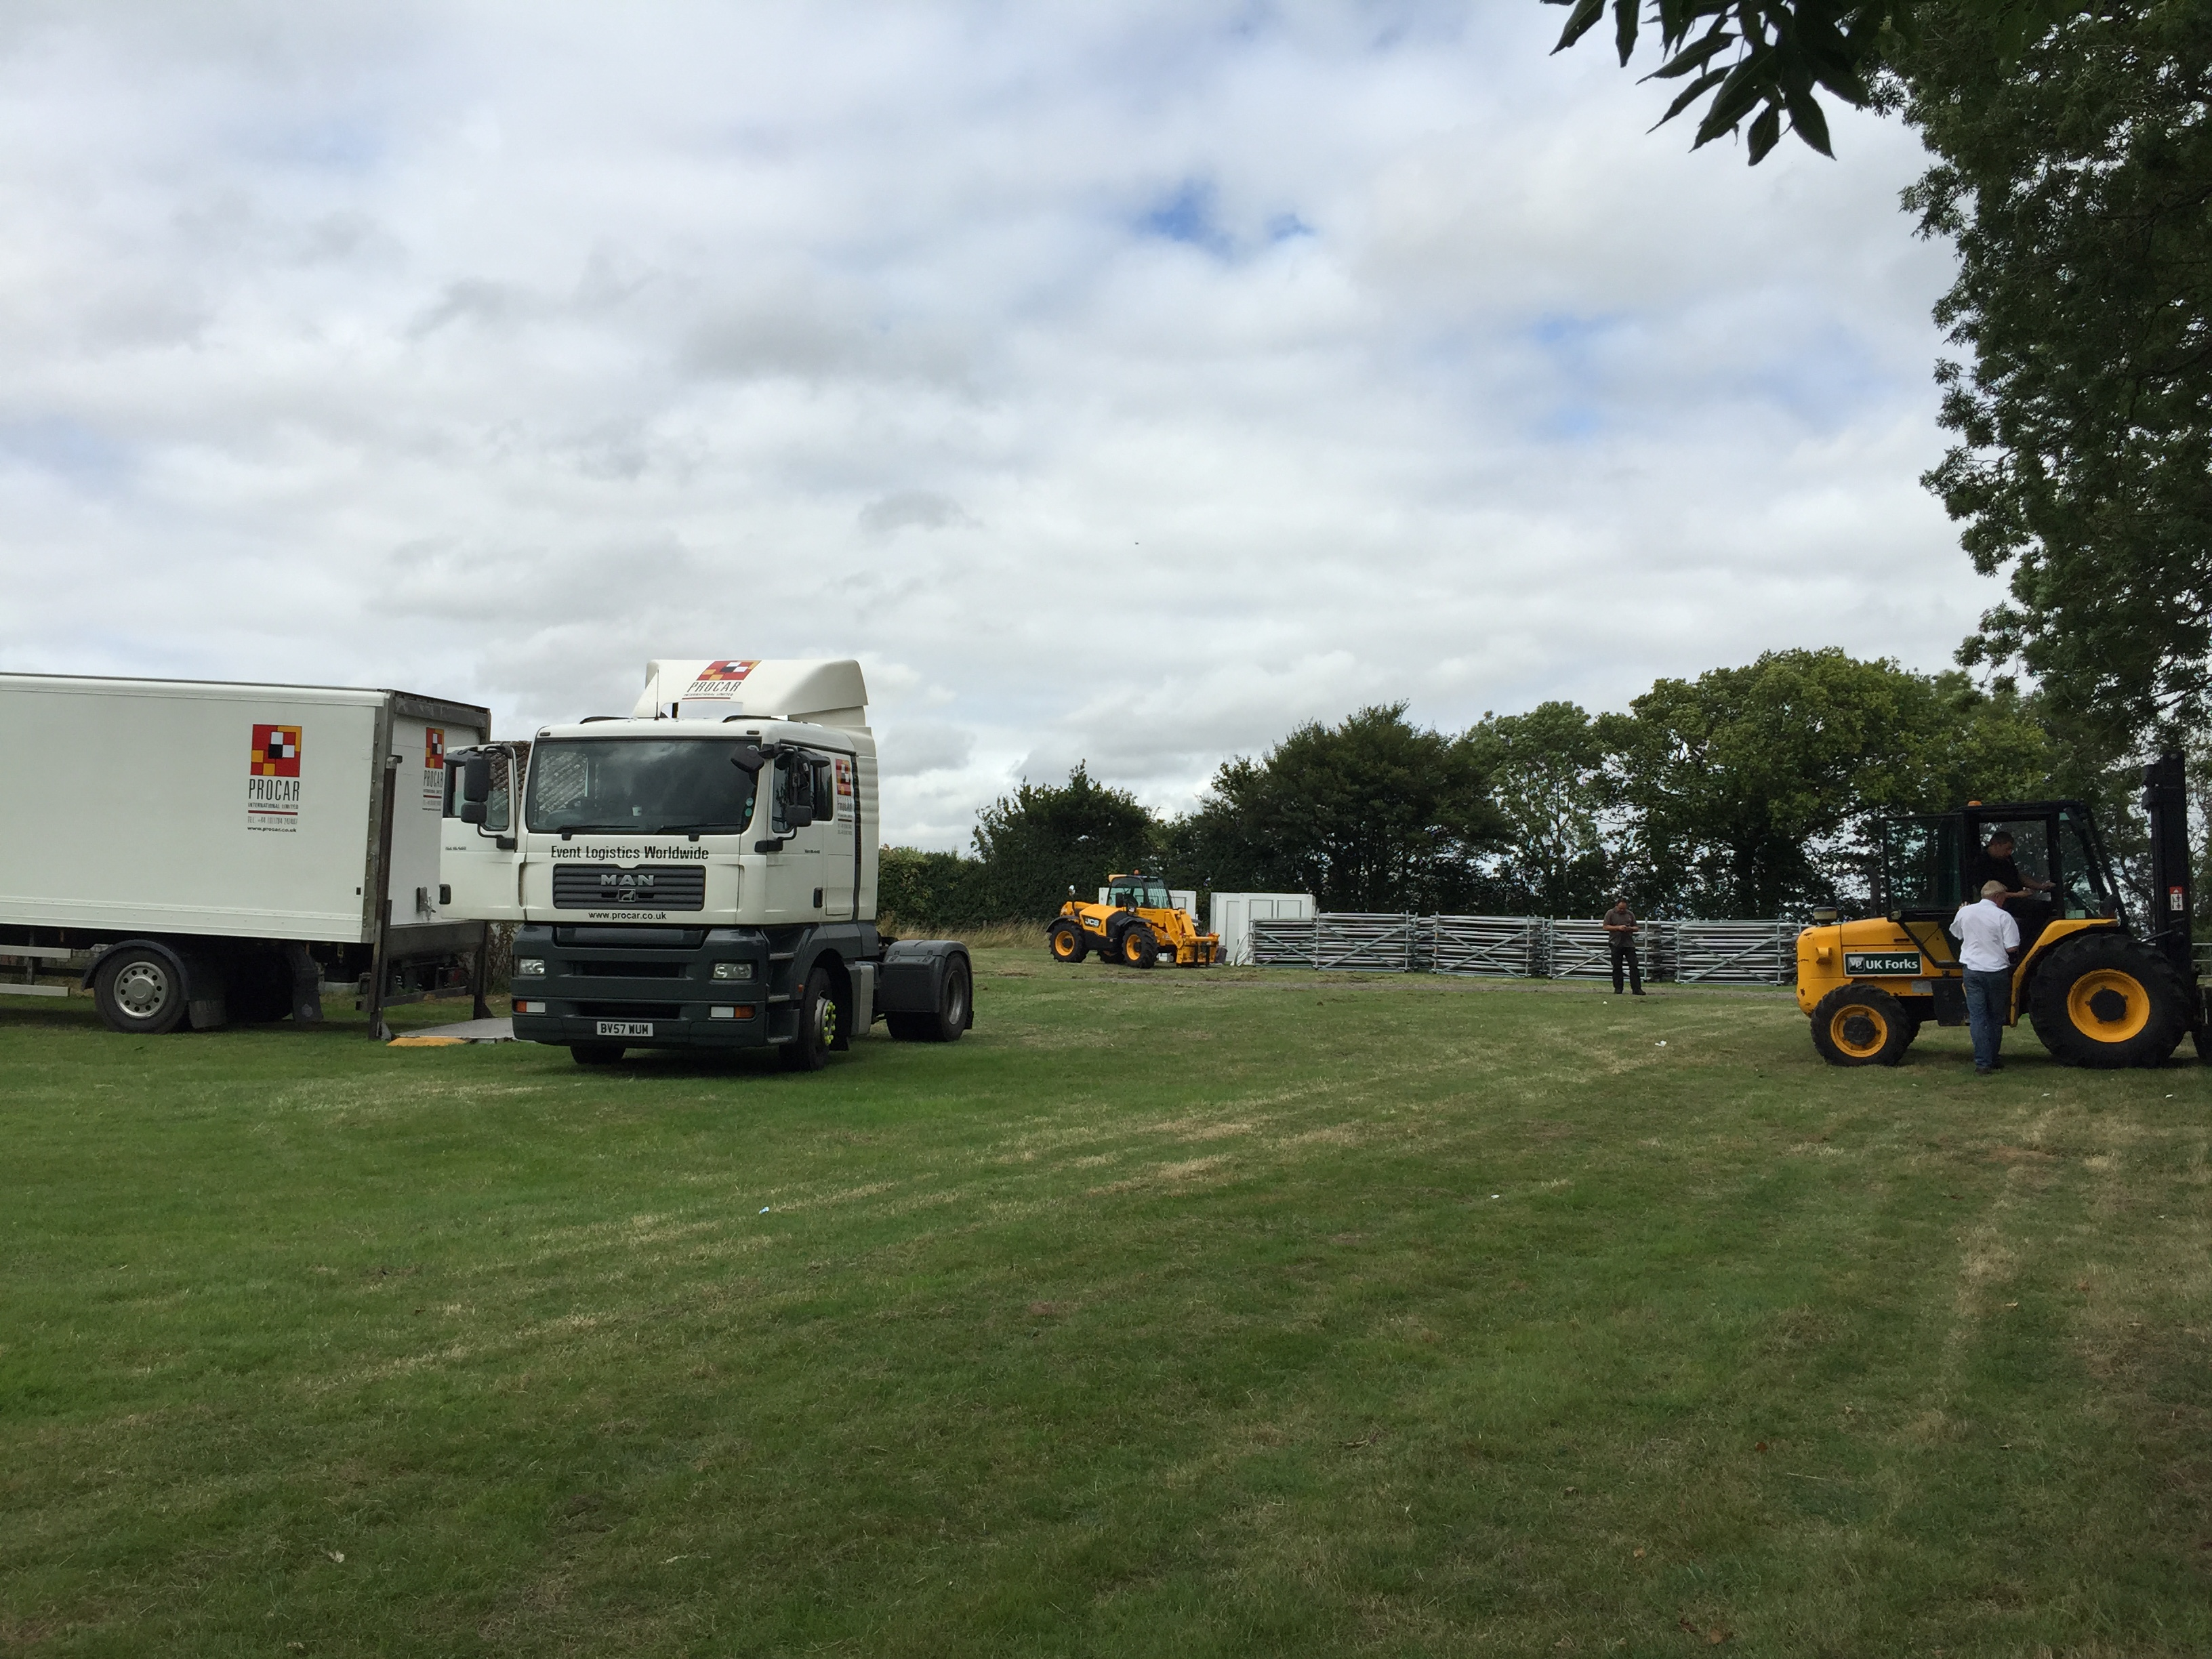 Snoozebox Snoozy delivery to Silverstone for MotoGP 2015